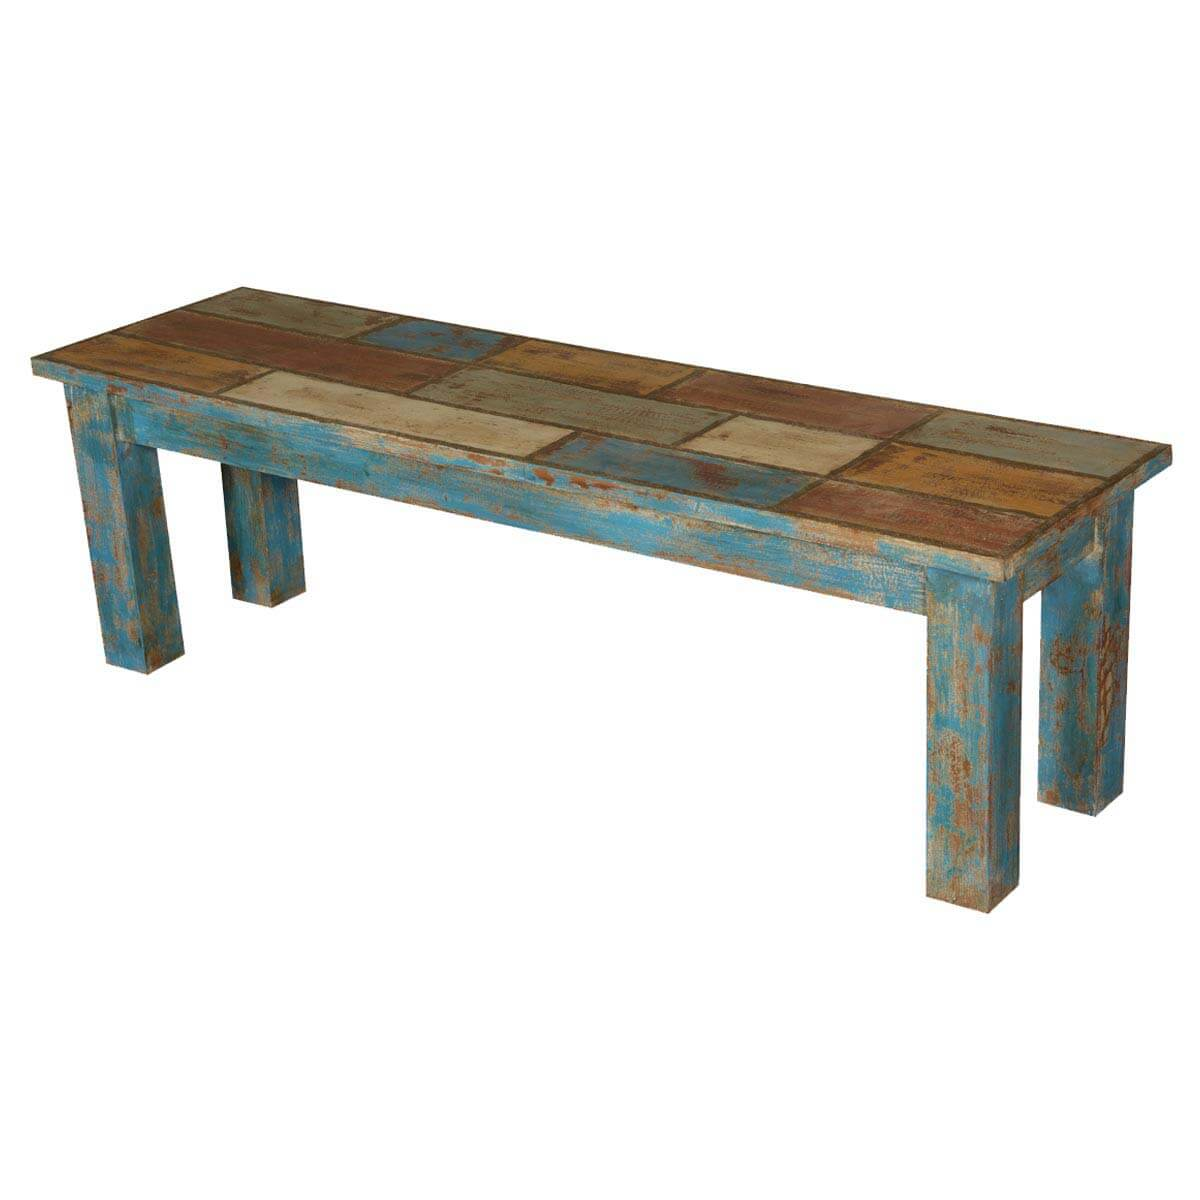 Francis wooden patches distressed acacia wood bench hover to zoom